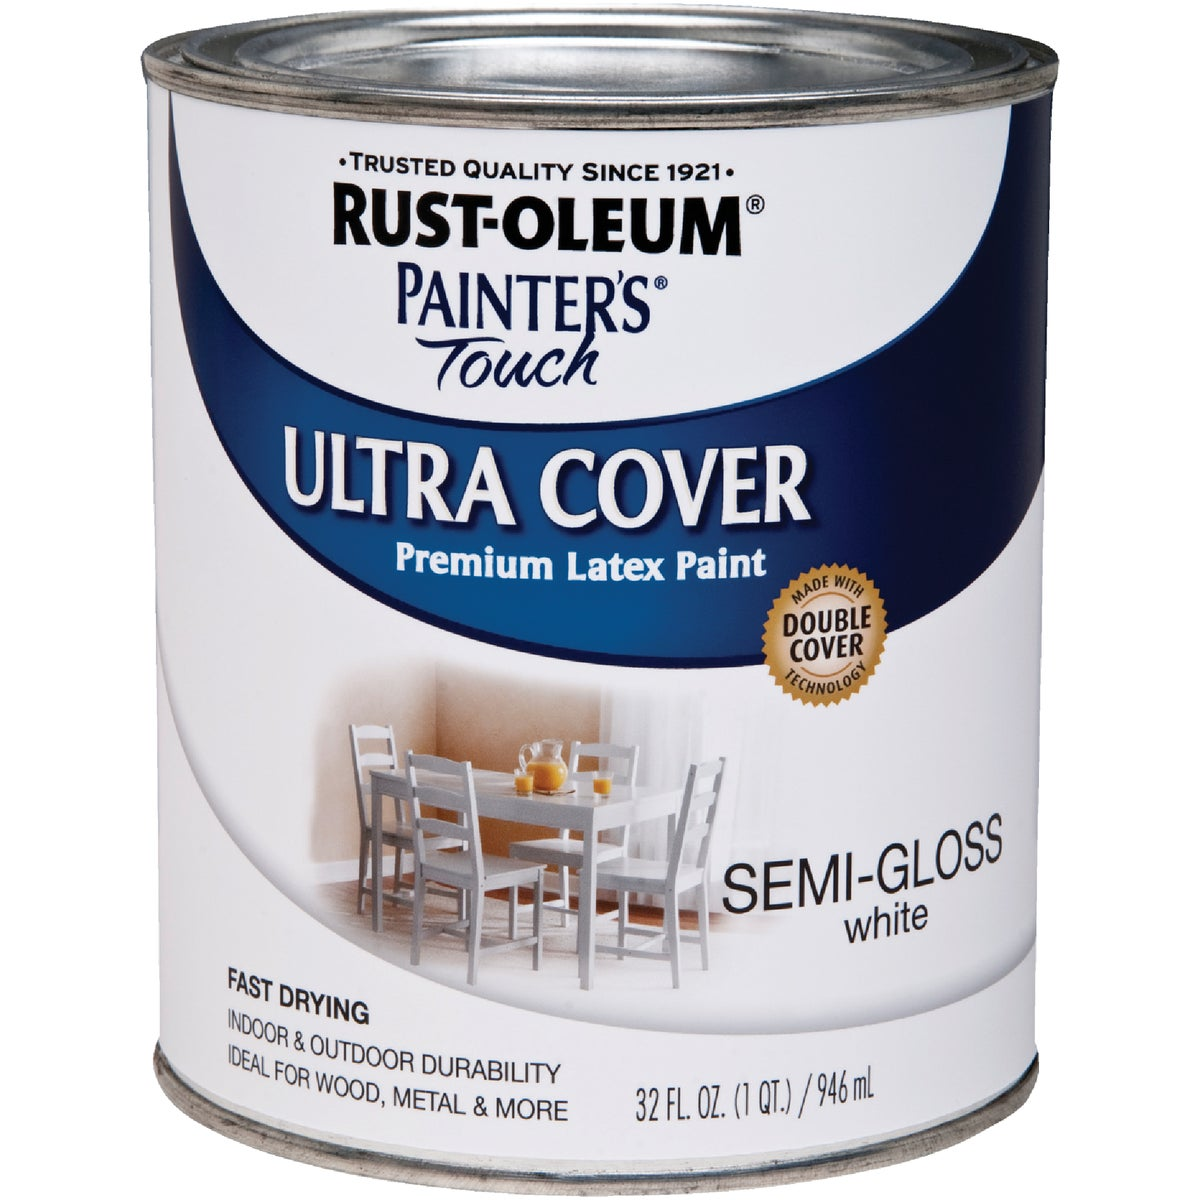 S/G WHITE LATEX PAINT - 1993-502 by Rustoleum